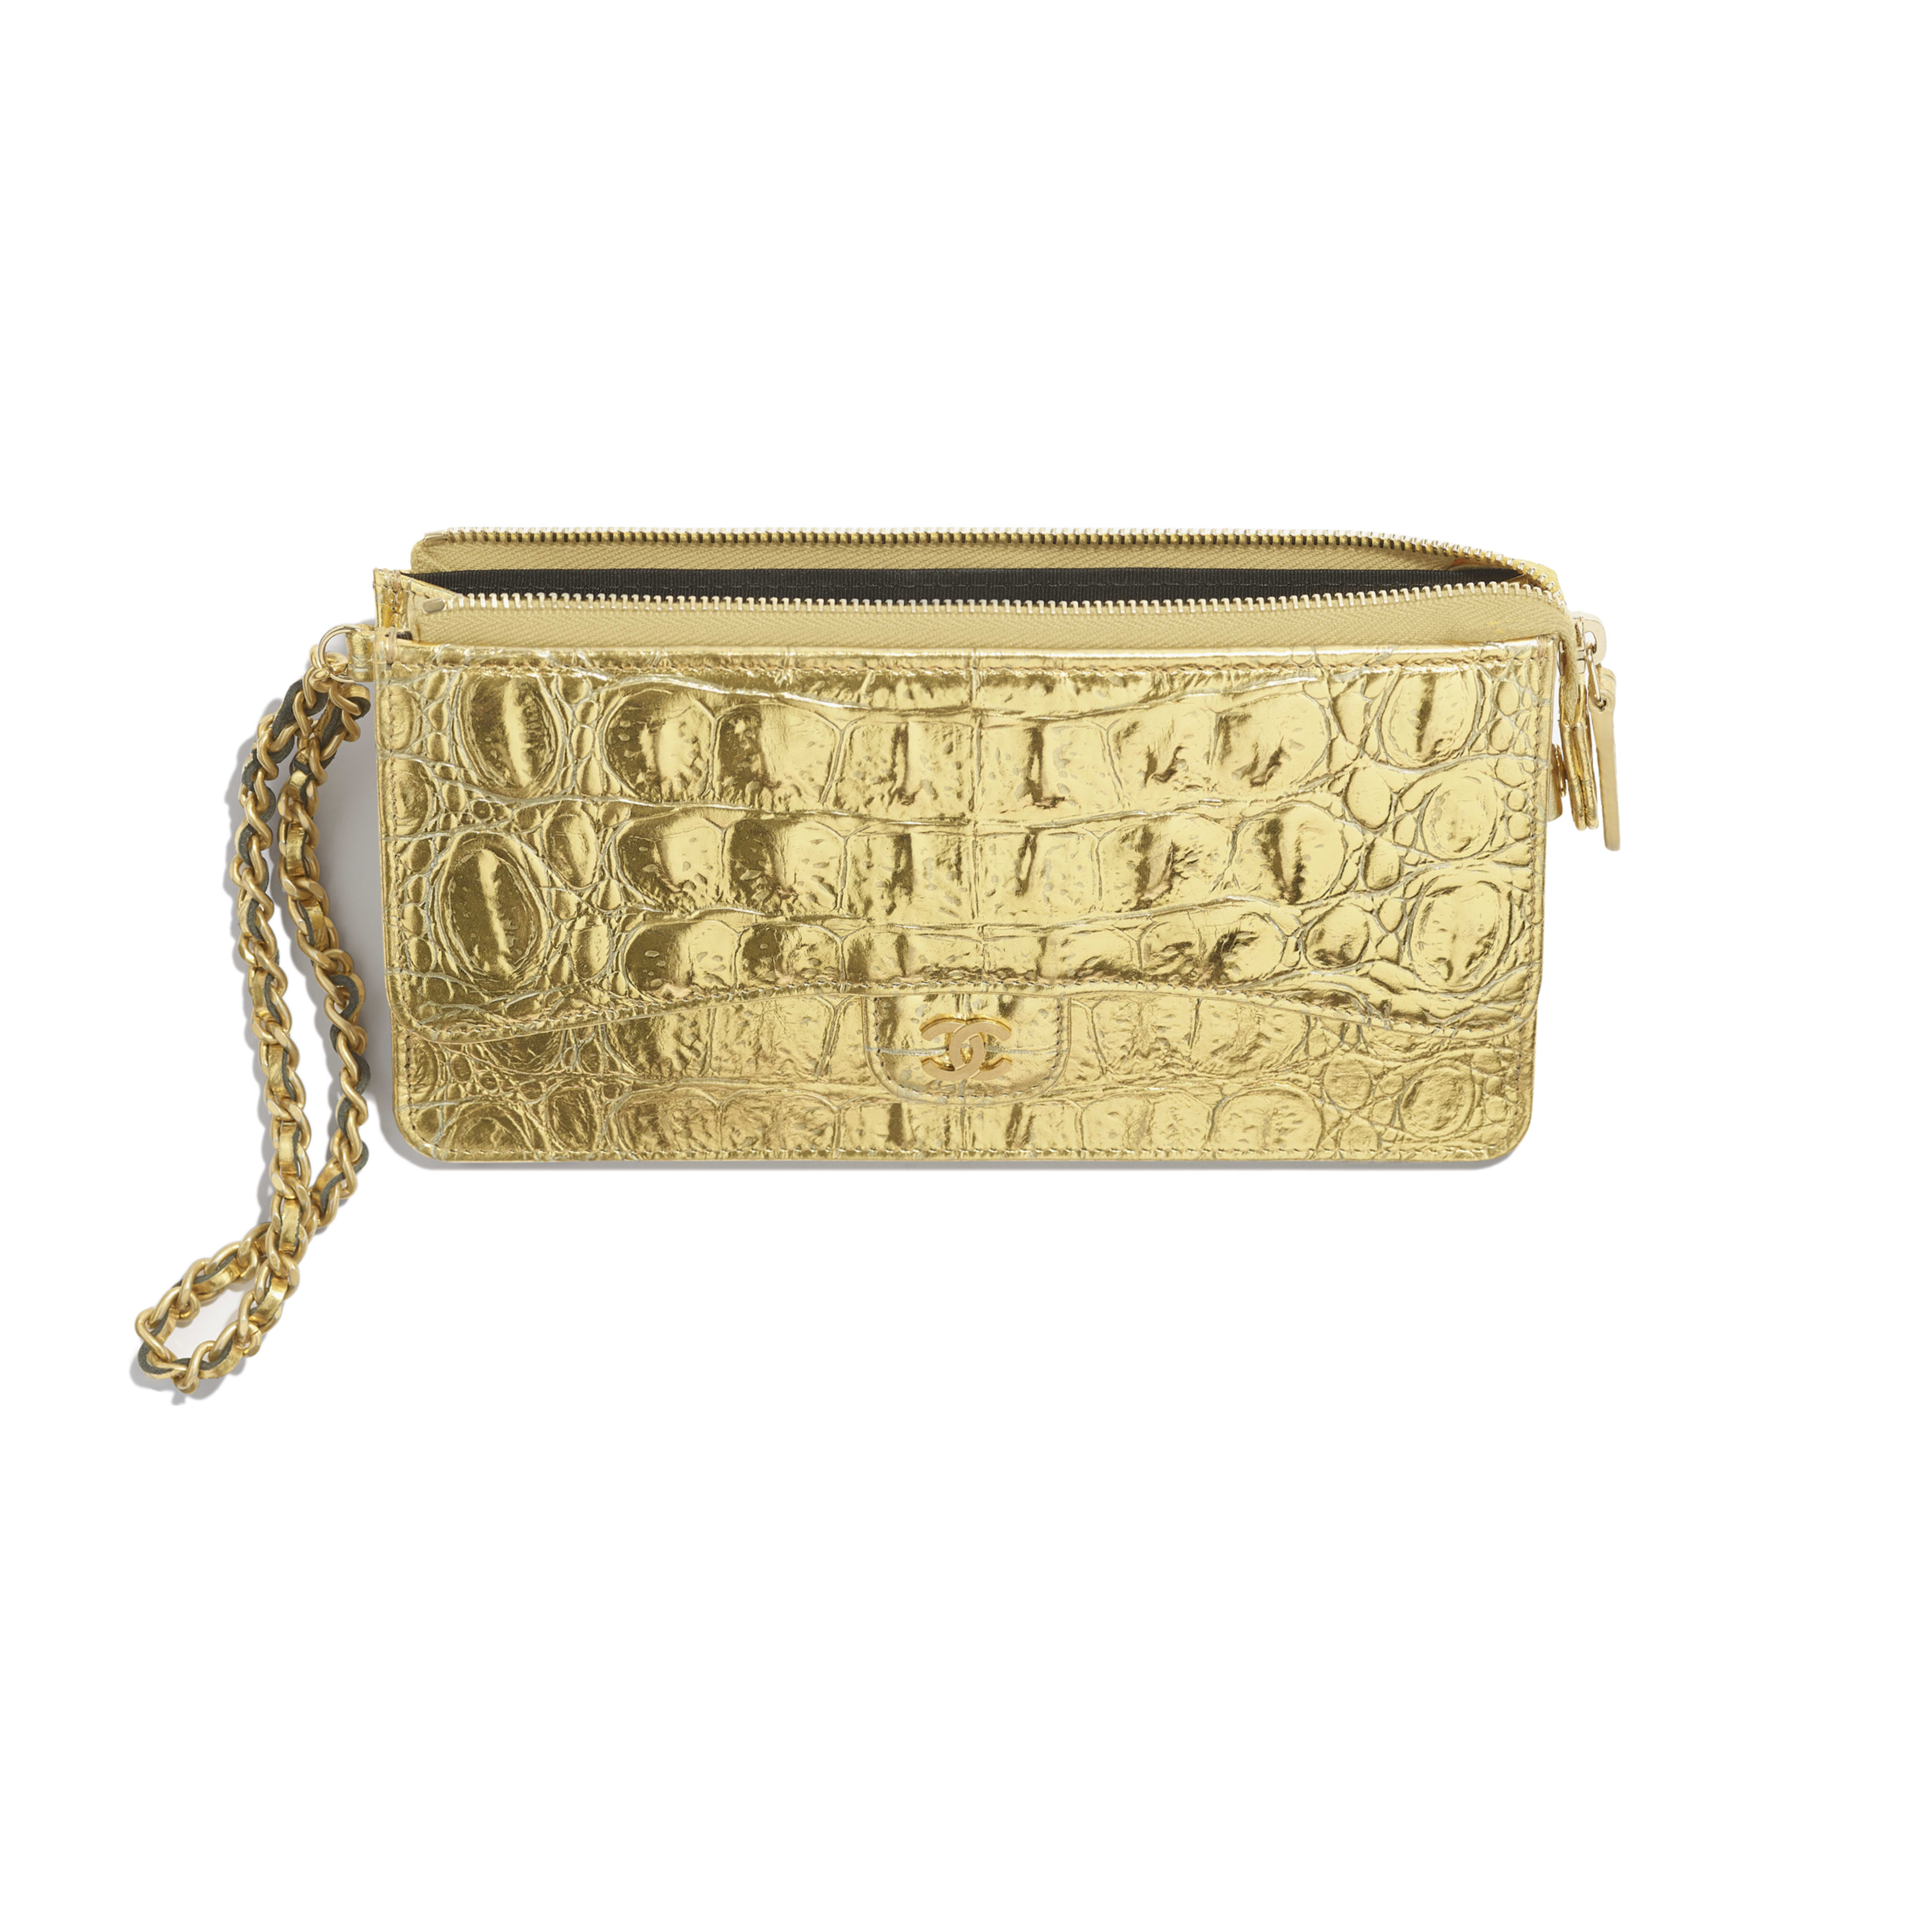 Classic Pouch with Handle - Gold - Metallic Crocodile Embossed Calfskin & Gold Metal - Other view - see full sized version